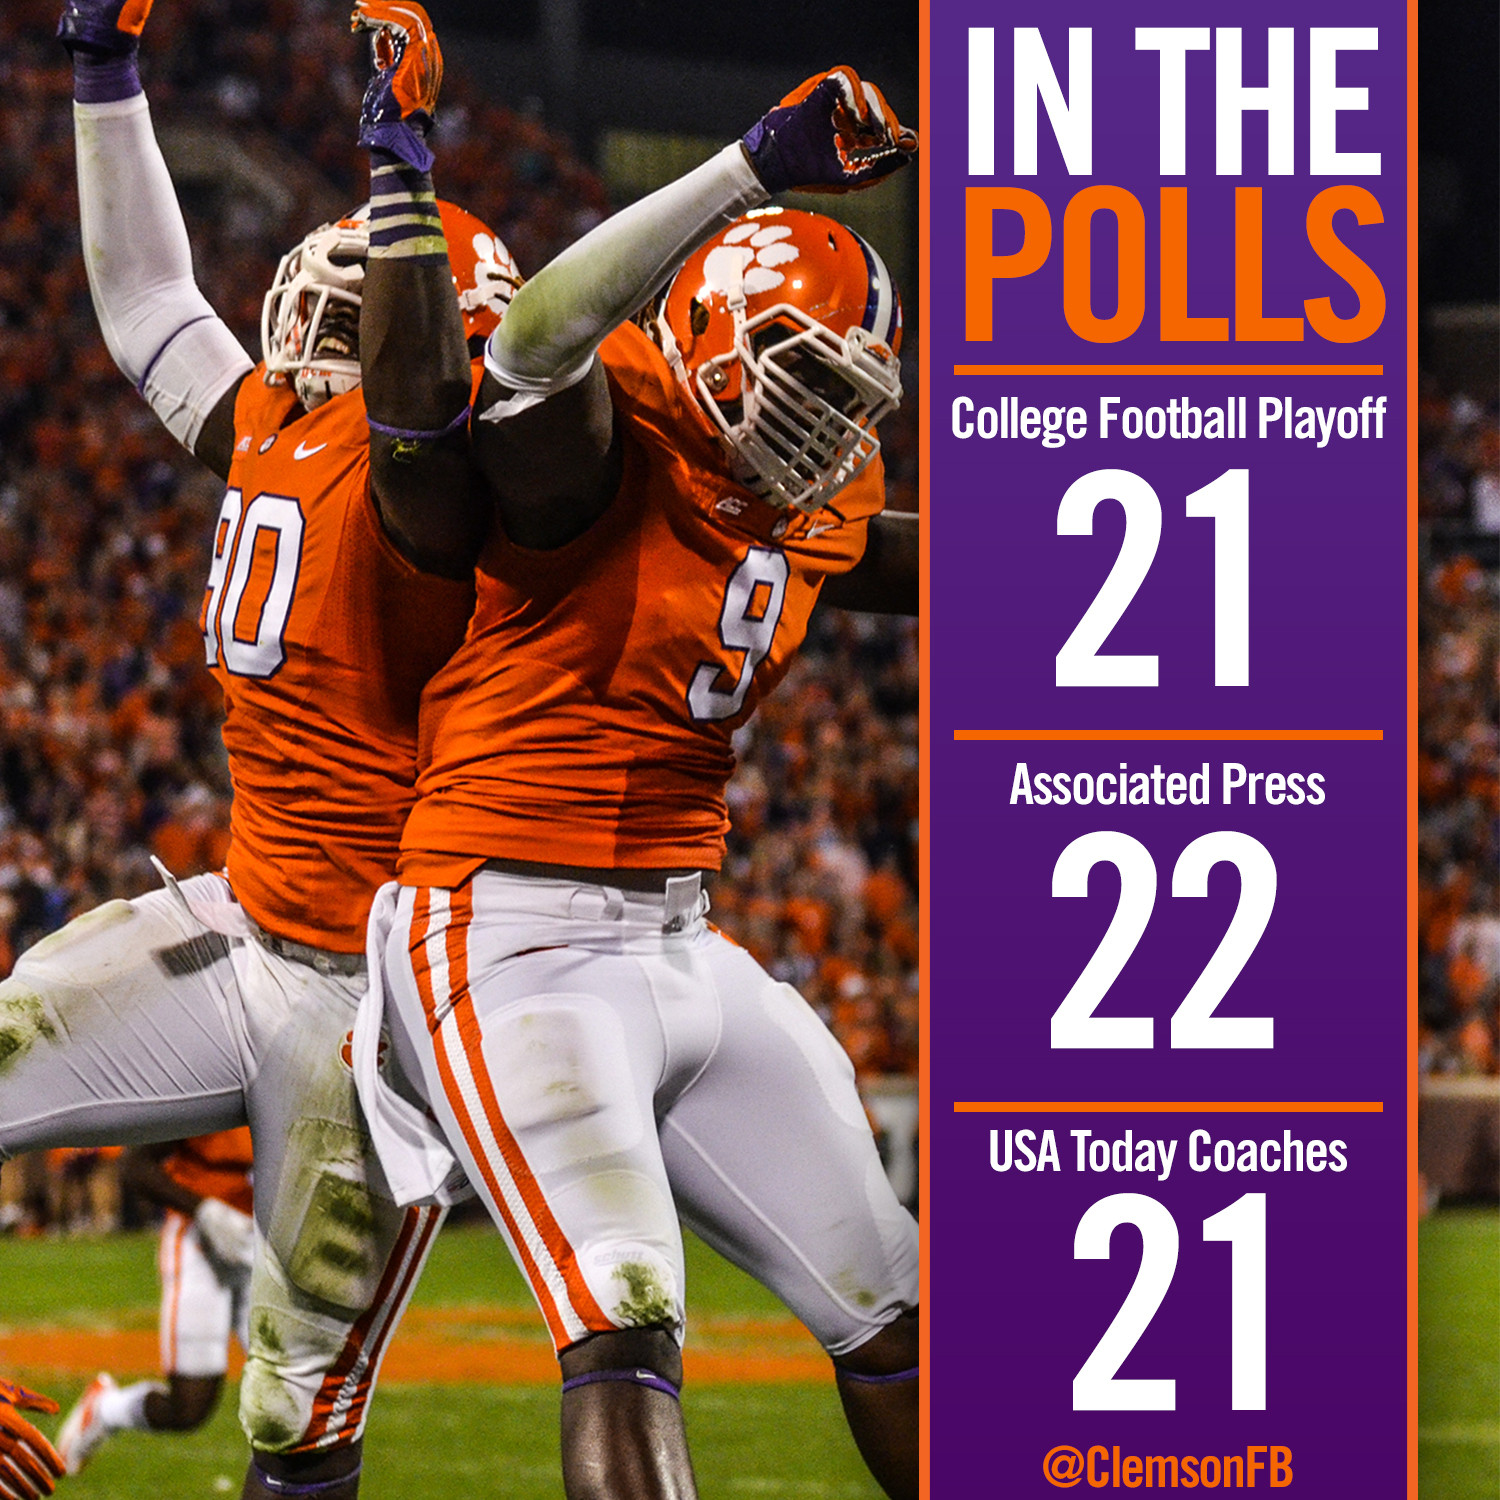 Clemson 21st in College Football Playoff Ranking